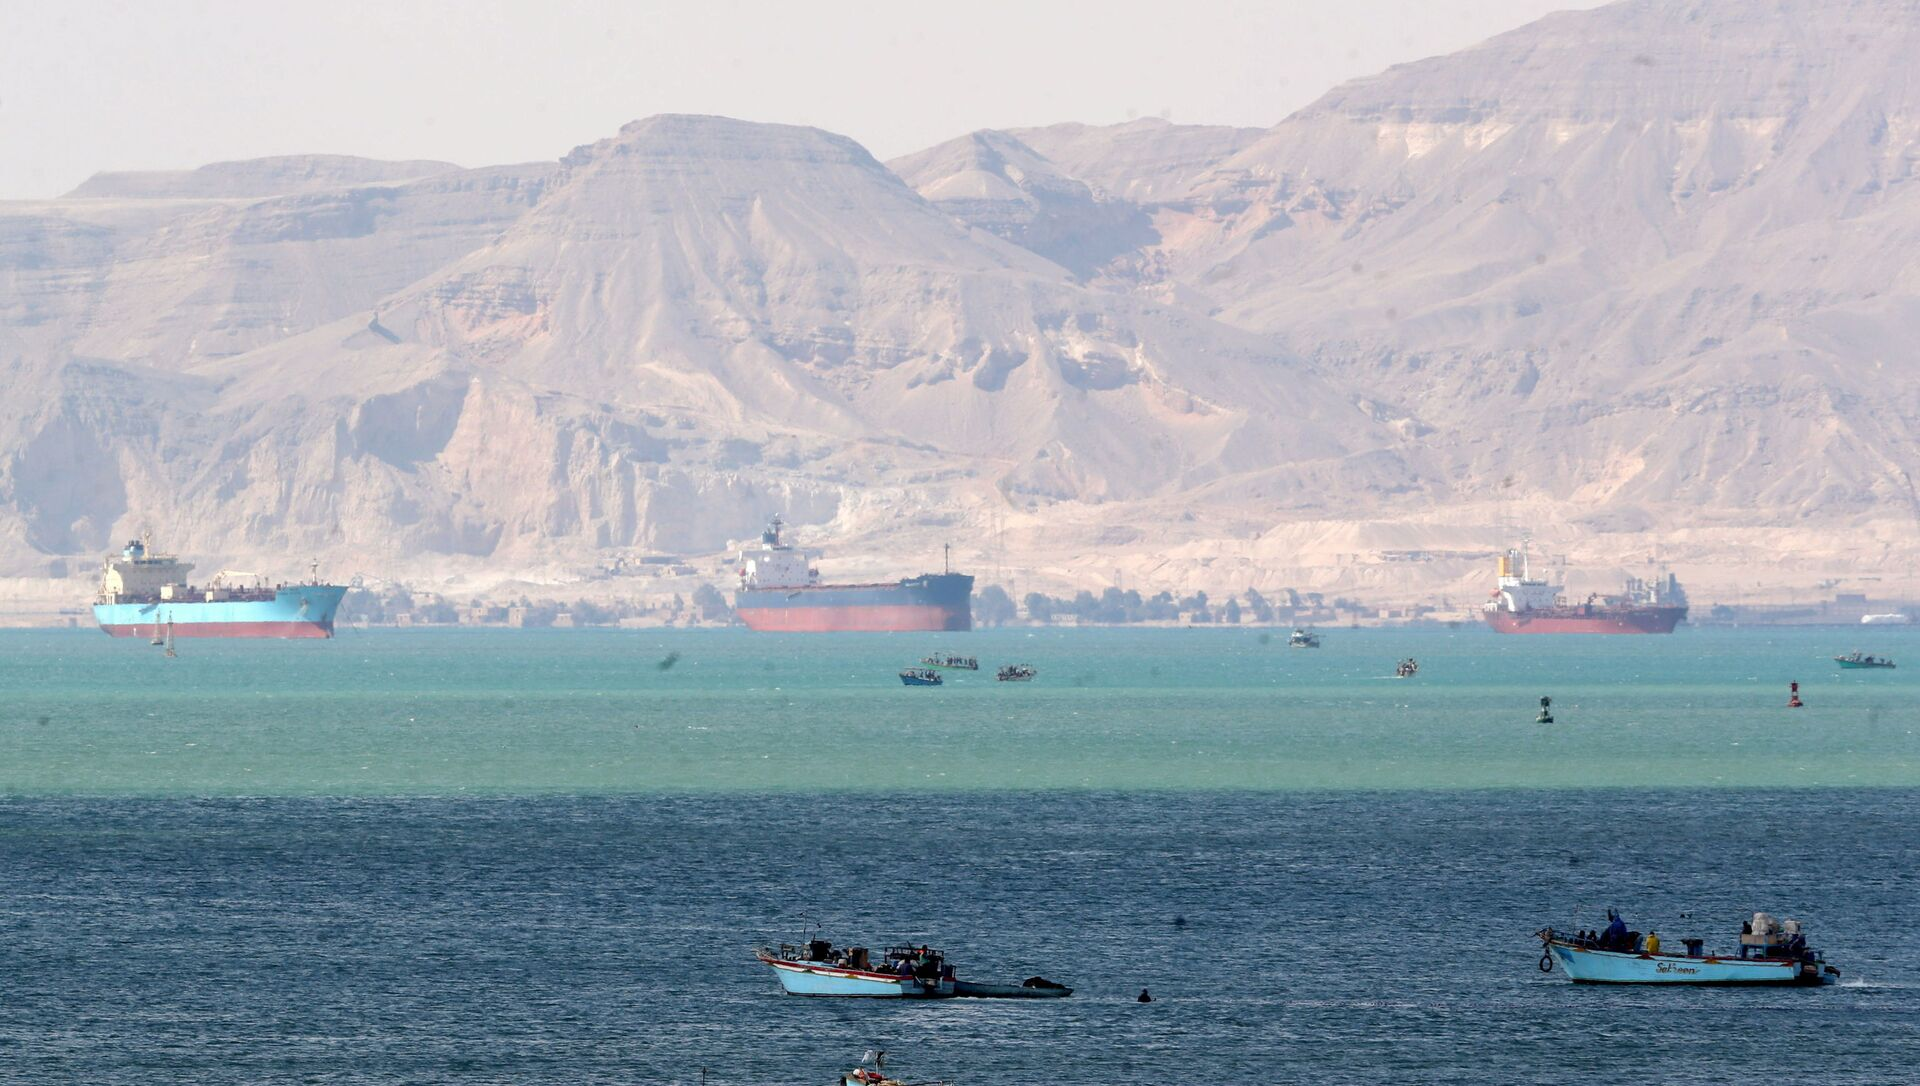 Ships and boats are seen at the entrance of Suez Canal, which was blocked by stranded container ship Ever Given that ran aground, Egypt March 28, 2021. REUTERS/Mohamed Abd El Ghany - Sputnik Italia, 1920, 28.03.2021